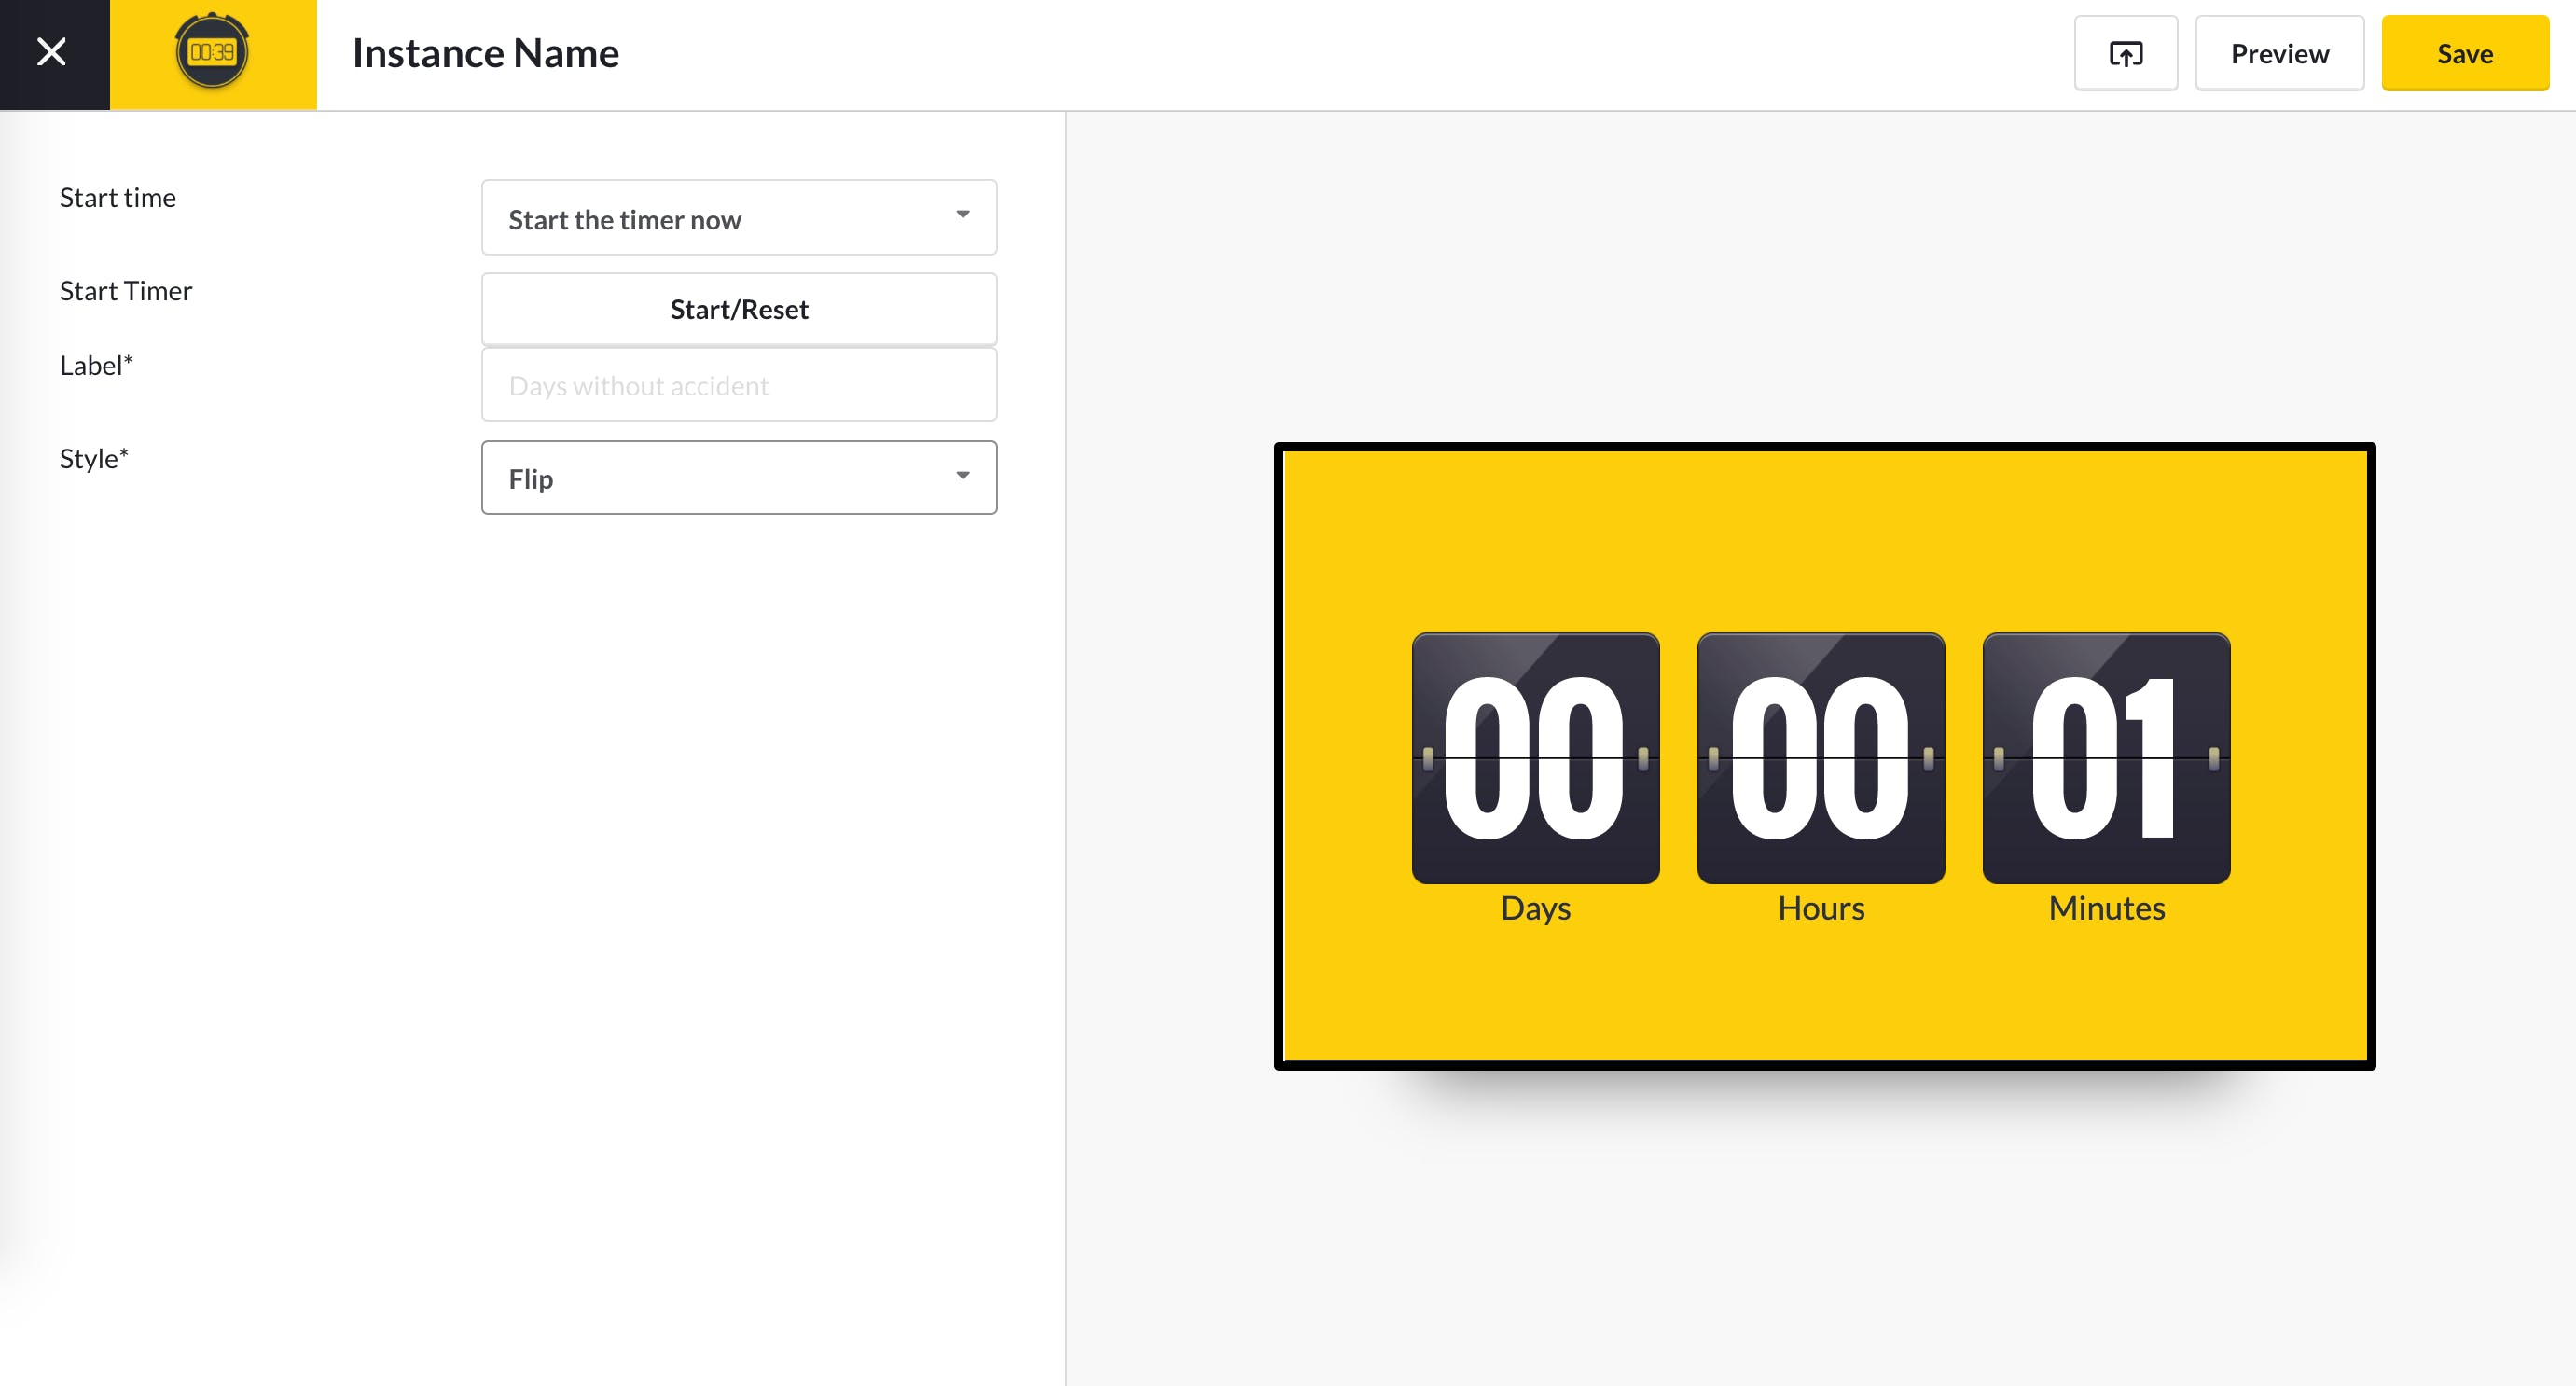 Count Up Timer App Guide - Flip 5.13.2020.png